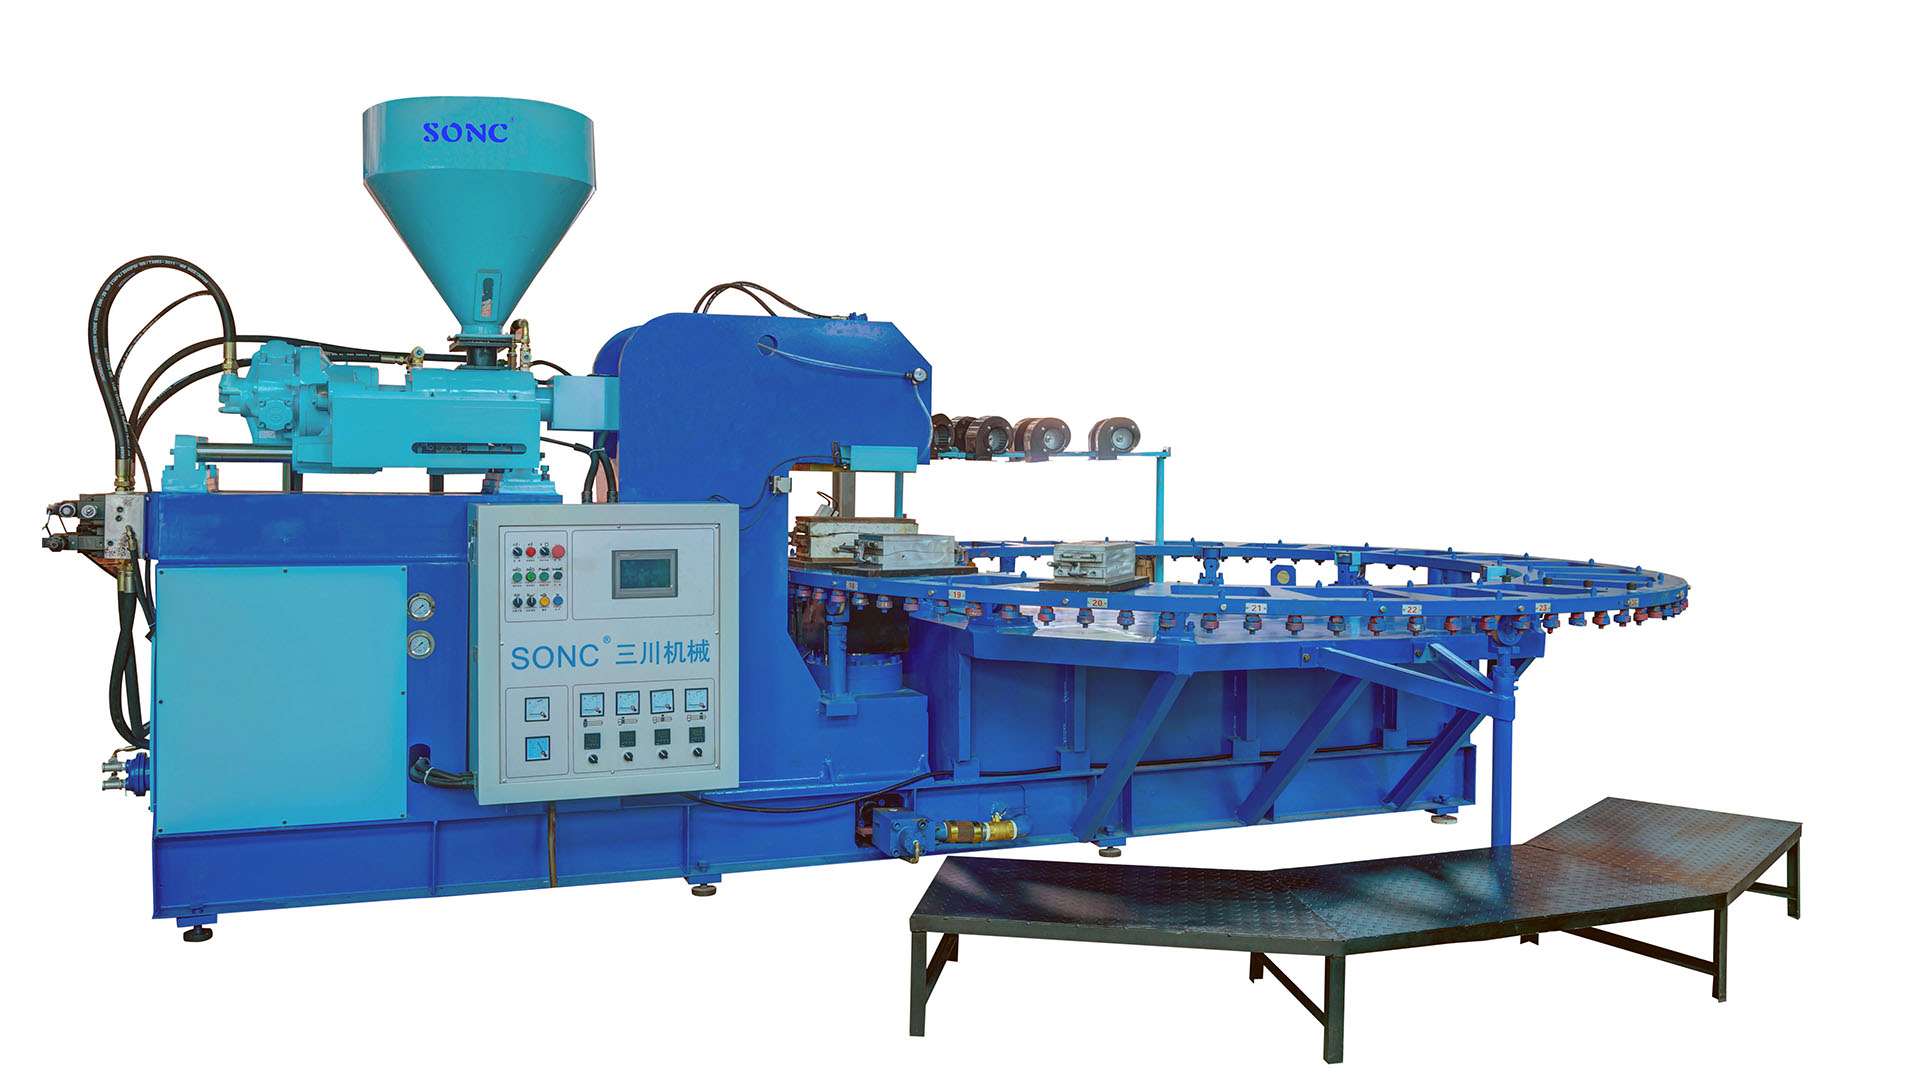 PVC Slippers & Sandals Injection Molding machine EA1 series A TYPE